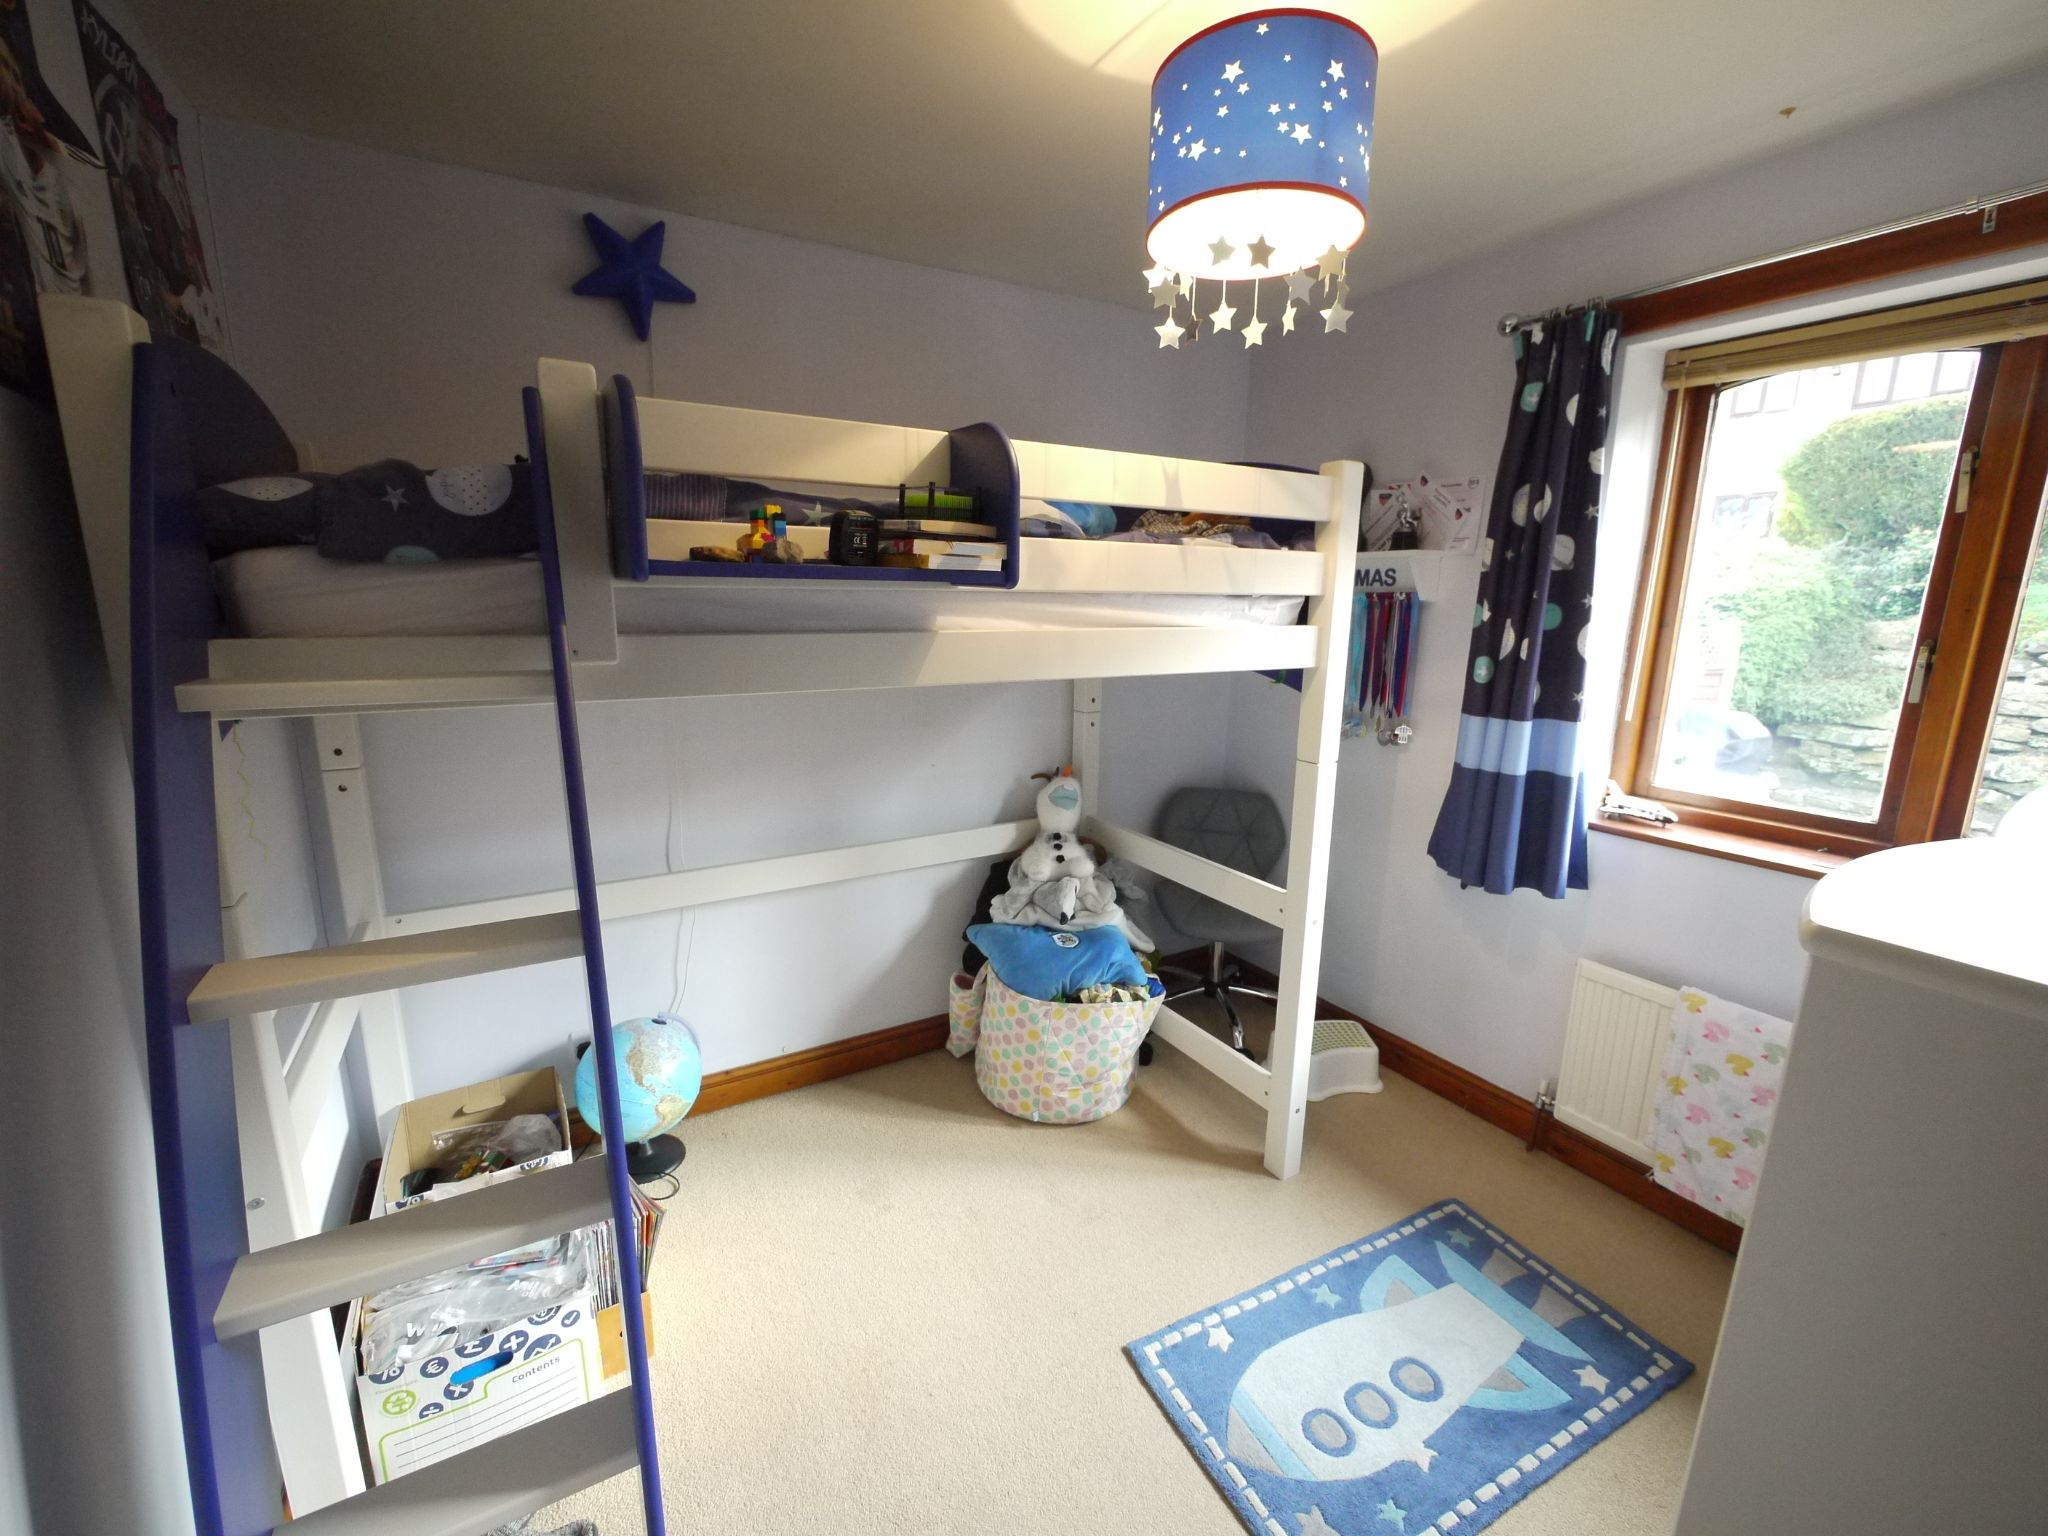 4 bedroom detached house SSTC in Brighouse - Bedroom 3.